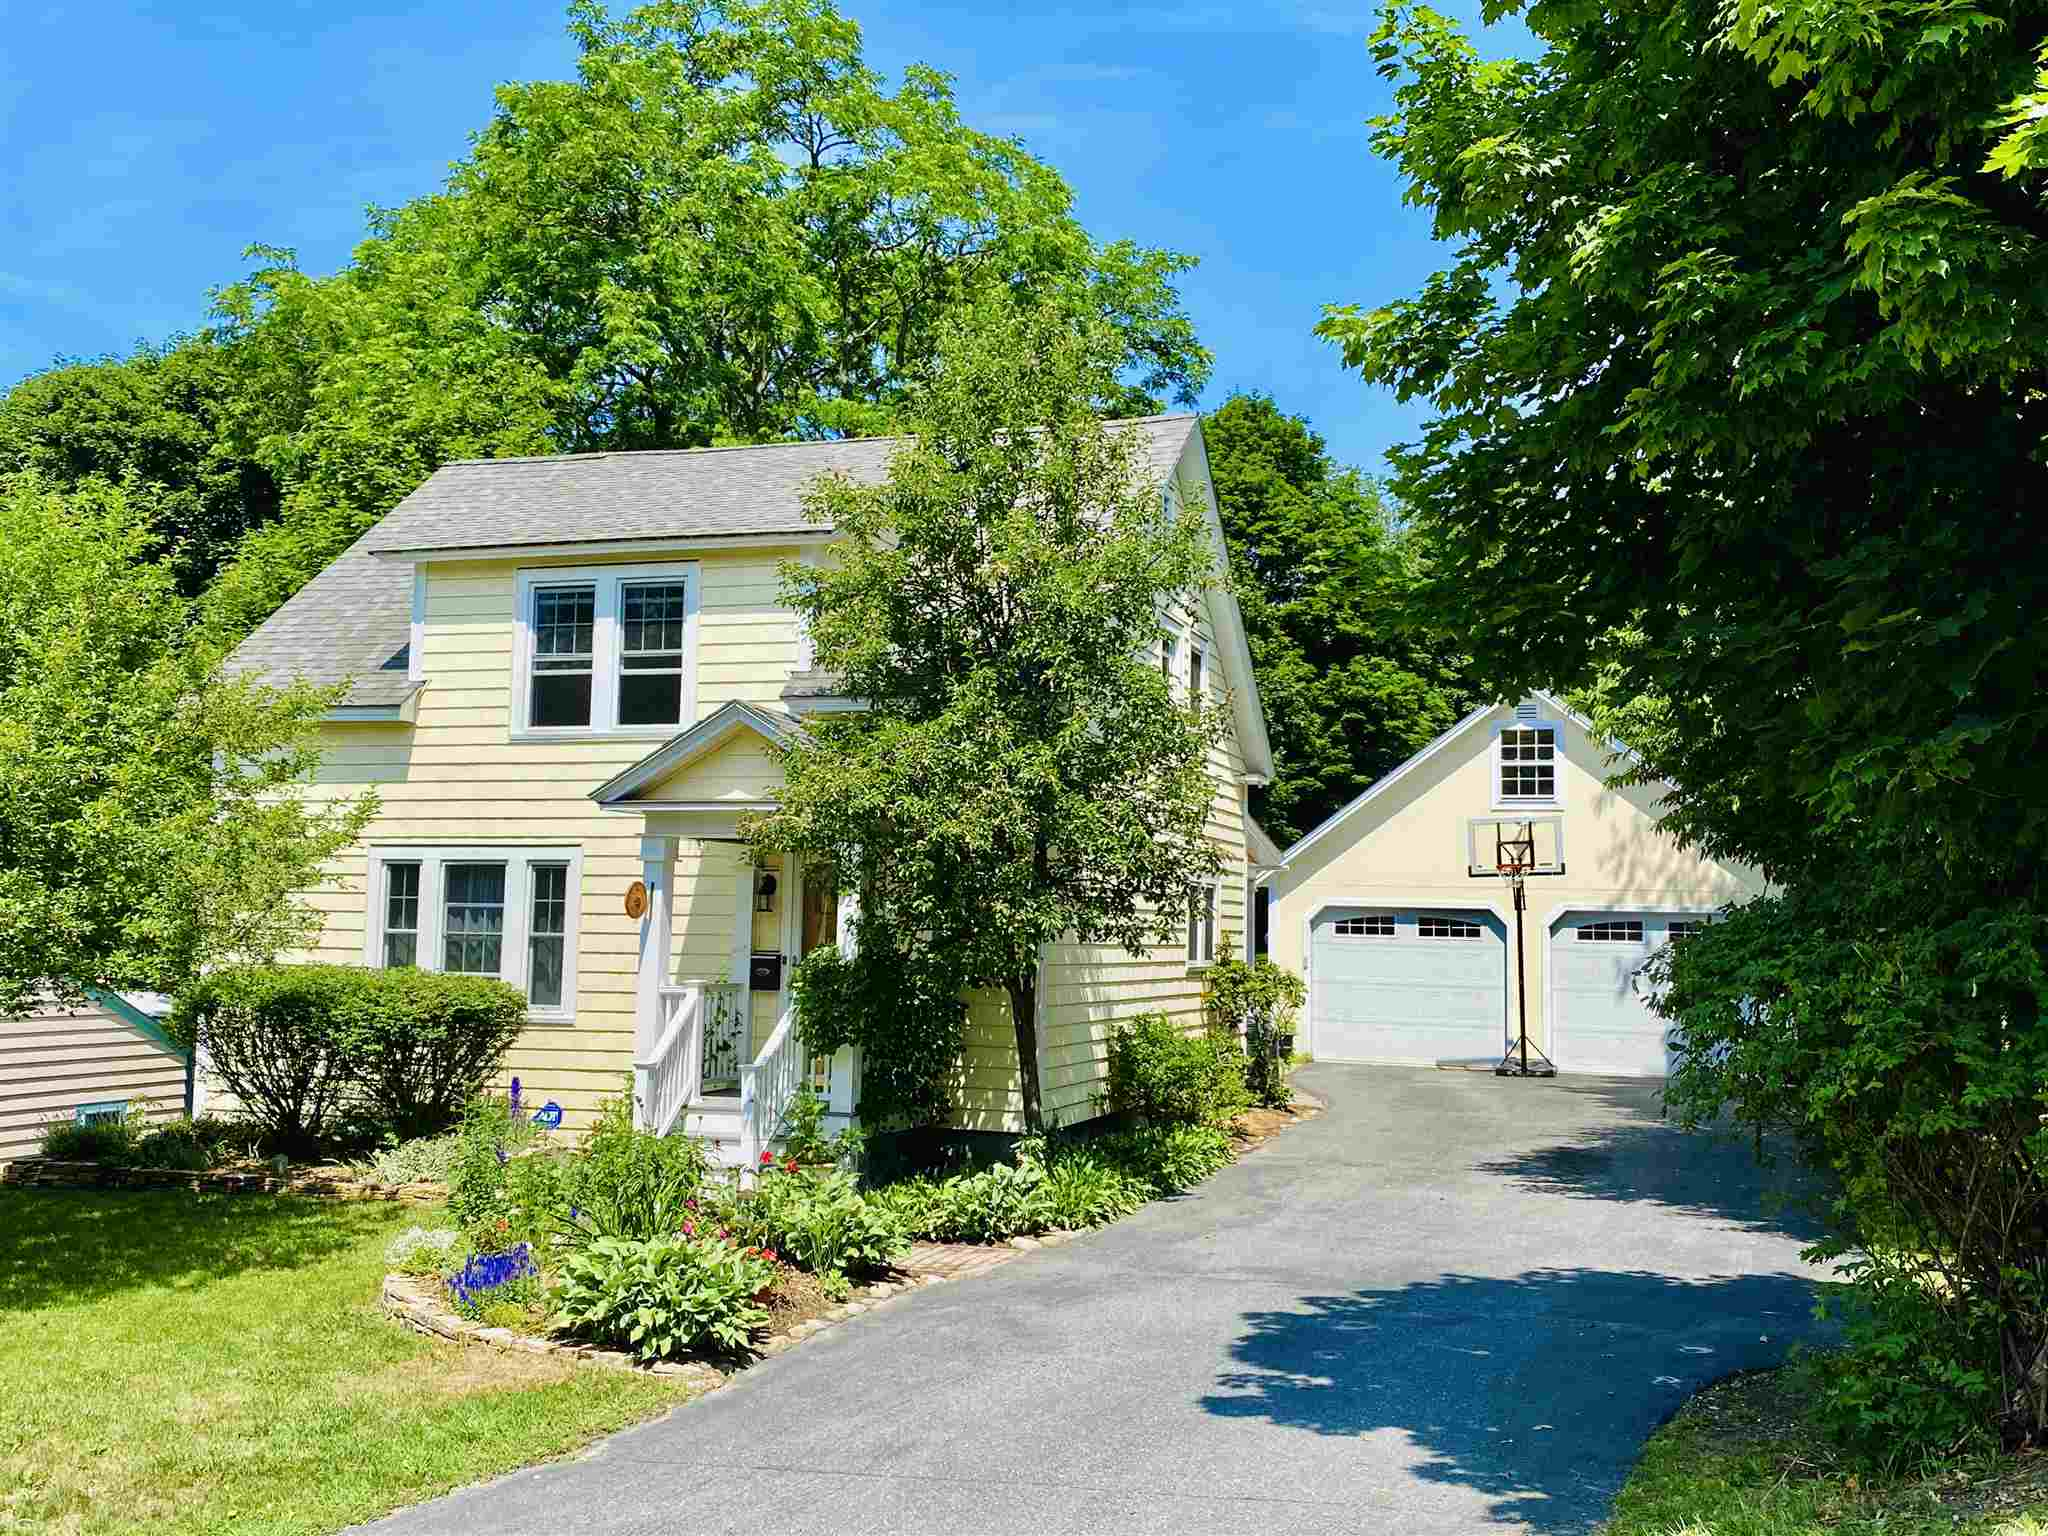 image of Newport NH Home | sq.ft. 2132